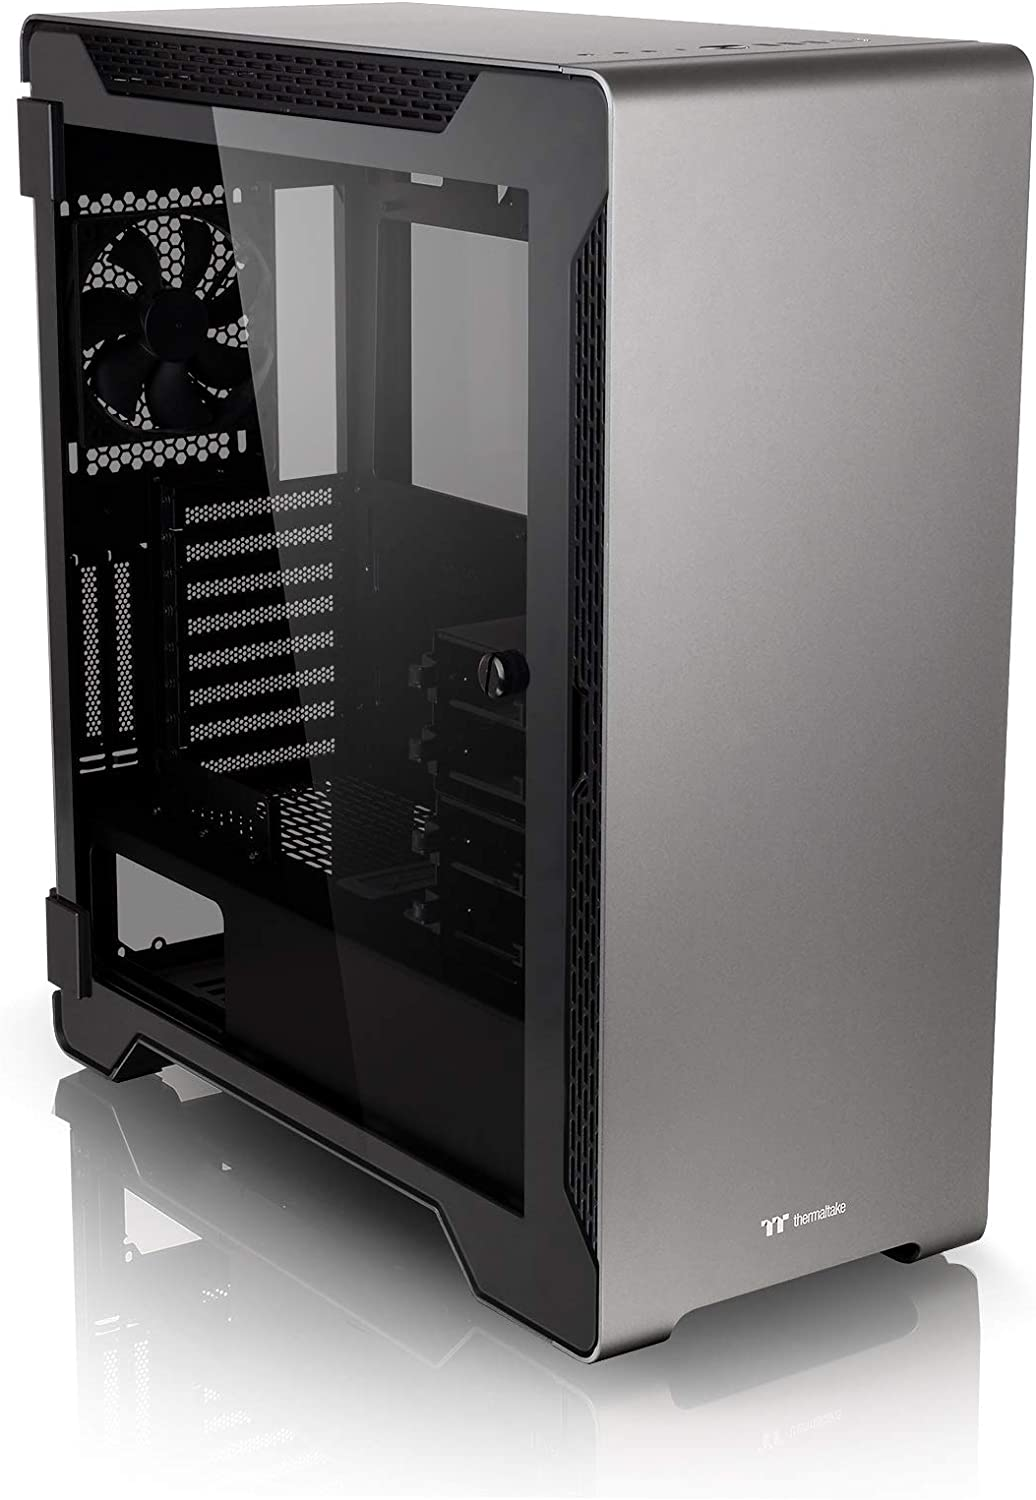 Black Thermaltake CA-1L3-00M9WN-00 A500 TG Space Gray PC-Case//Chassis//Gaming Case